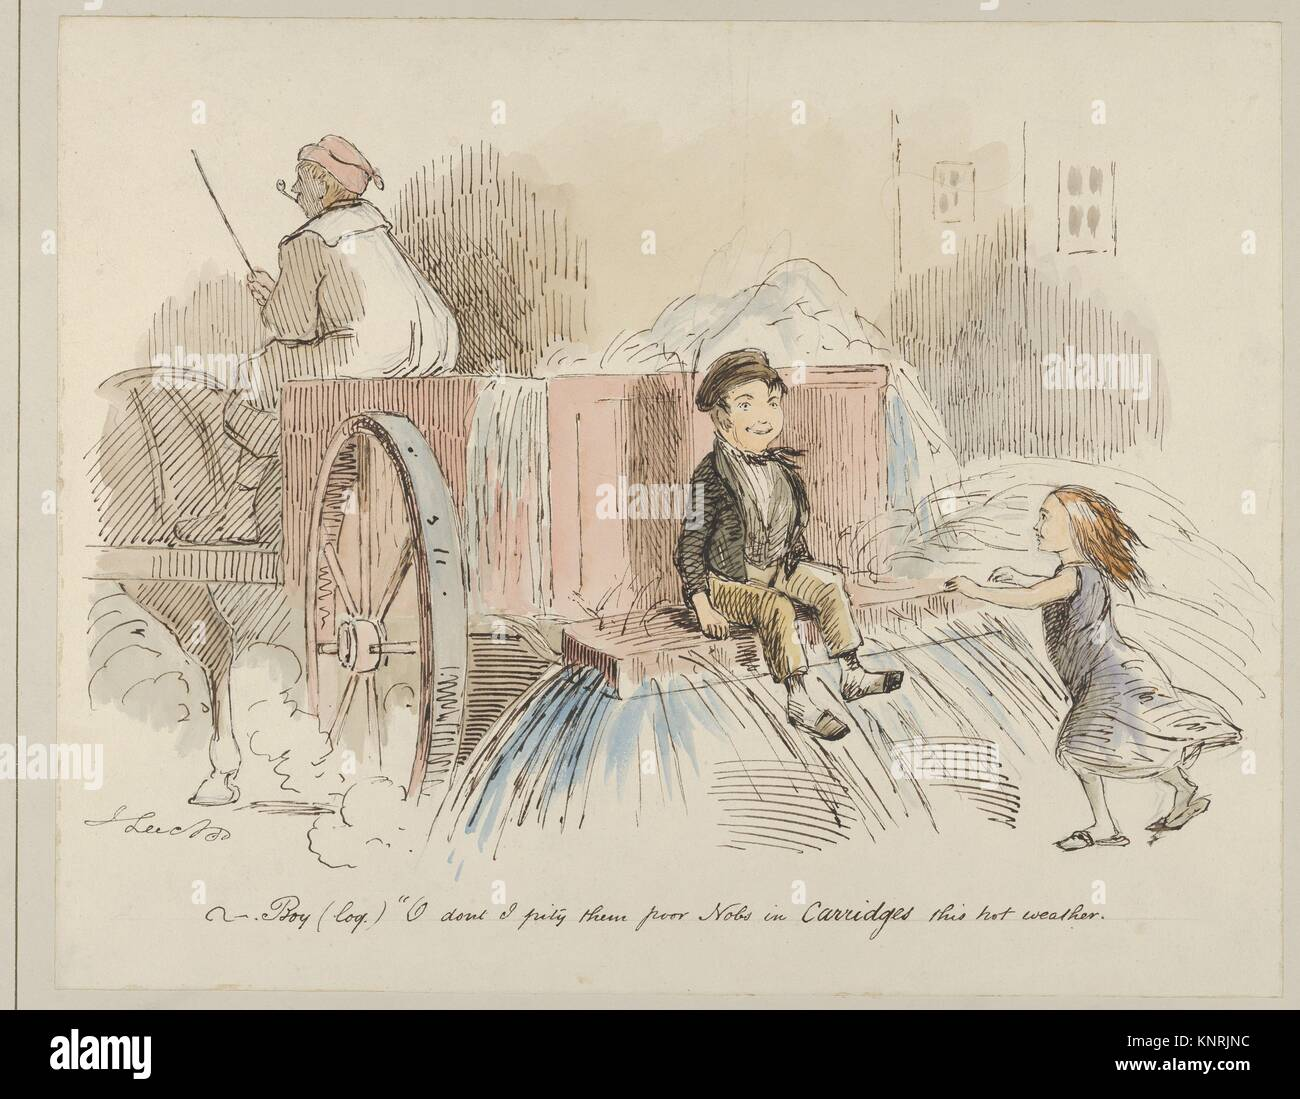 Boy (loq.) O don't I pity them poor Nobs in Carriages this hot weather. Artist: John Leech (British, London - Stock Image